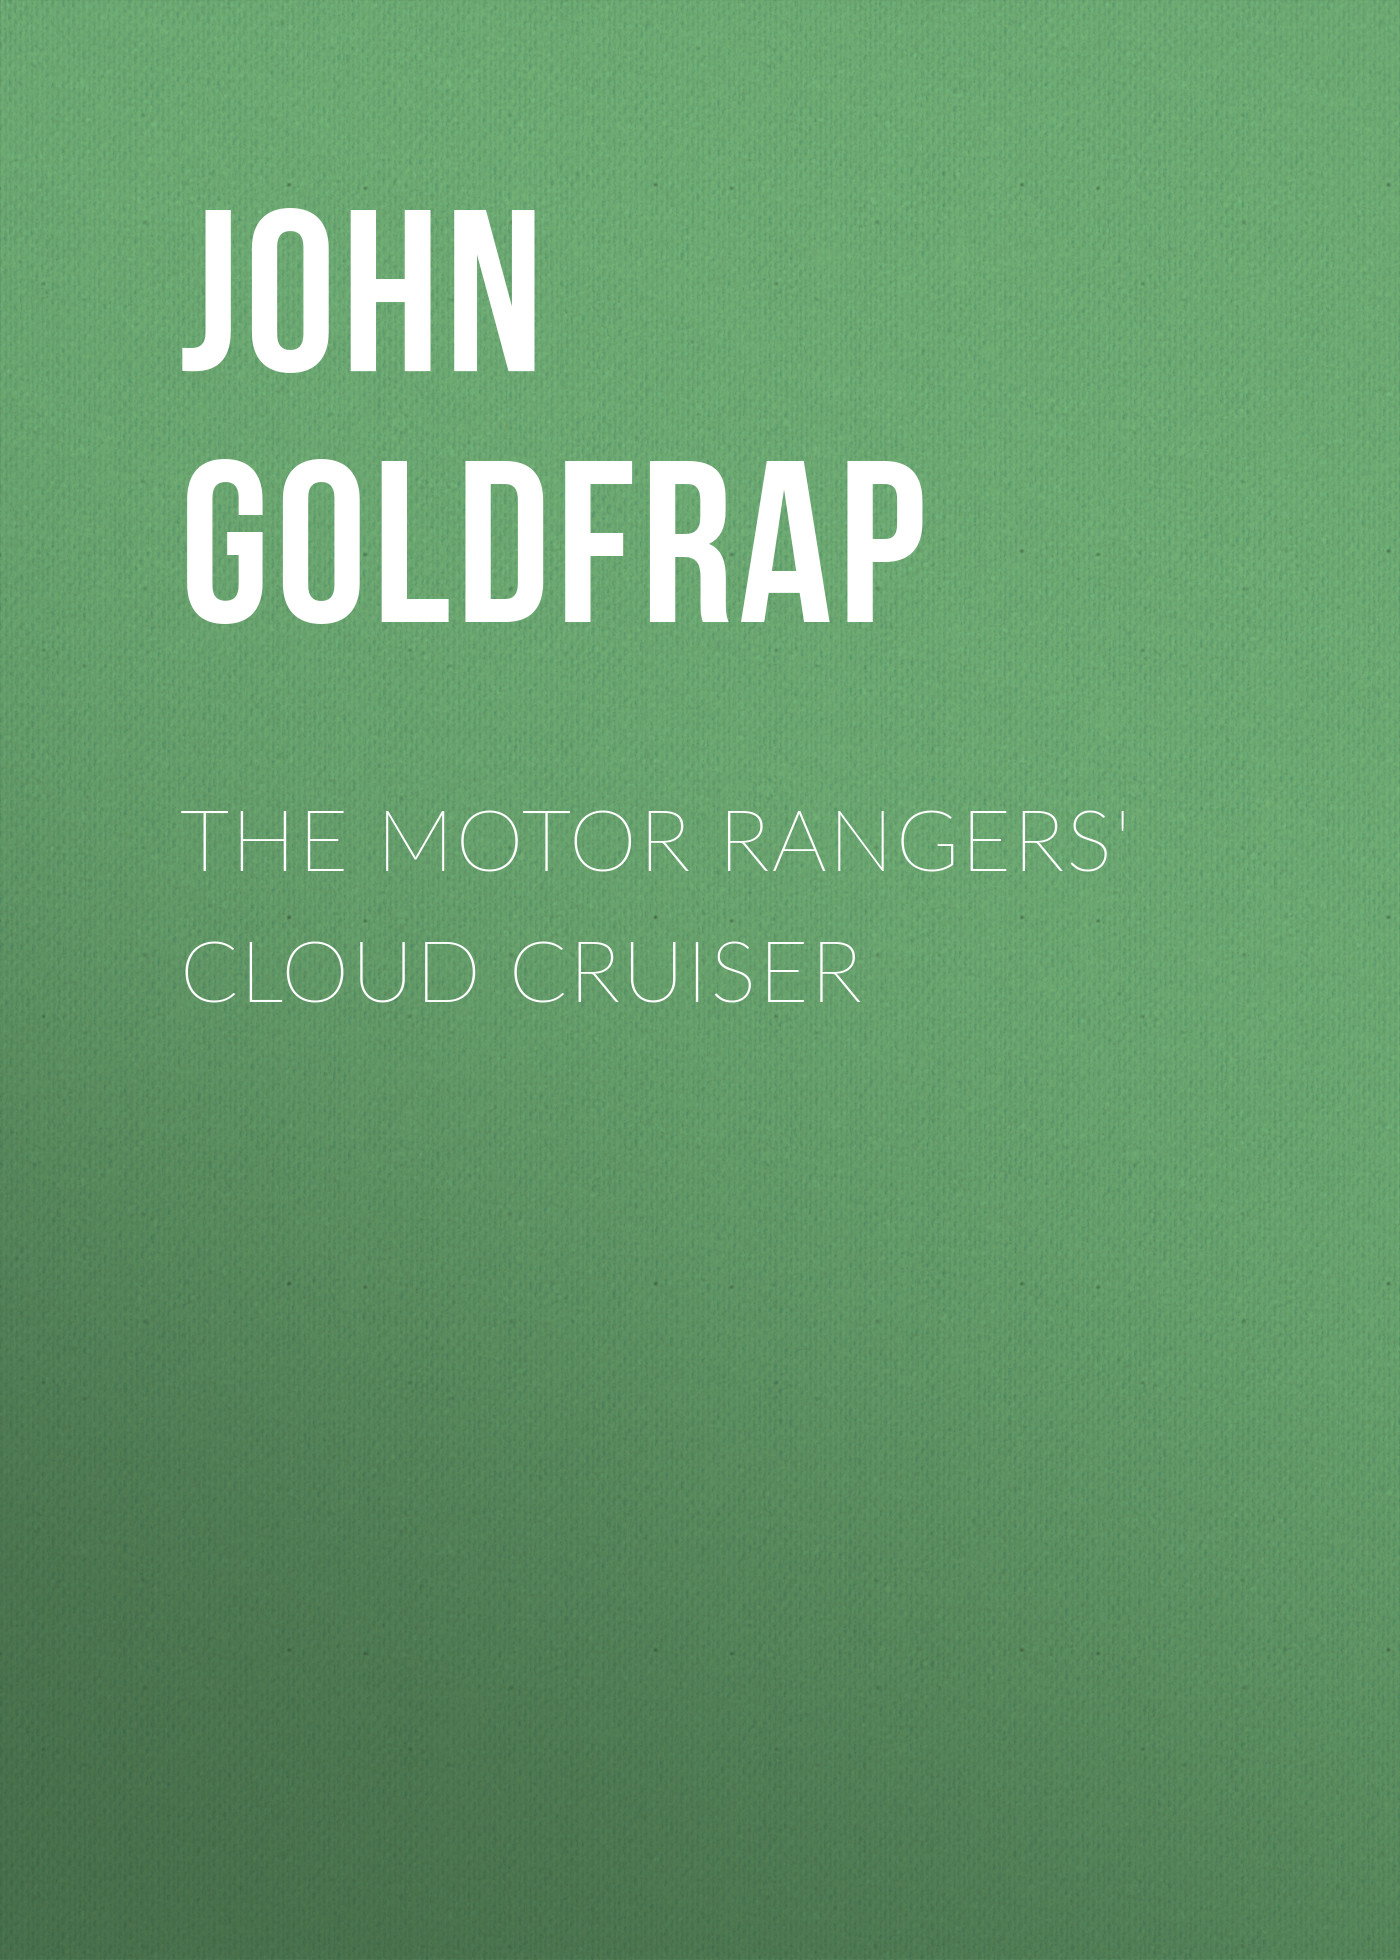 Goldfrap John Henry The Motor Rangers' Cloud Cruiser а дюма асканио